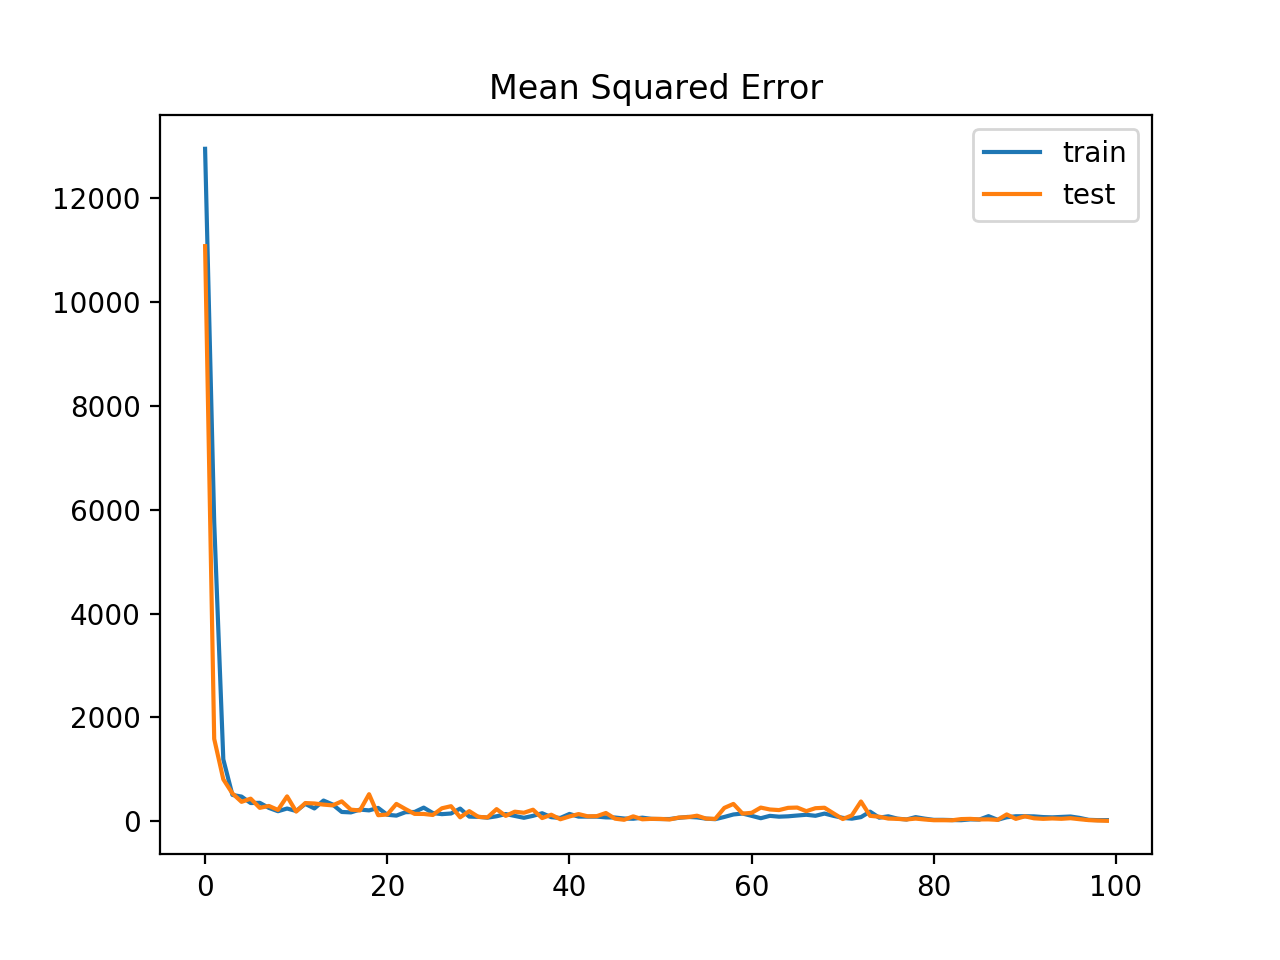 Line Plot of Mean Squared Error Loss for the Train (blue) and Test (orange) Datasets Over Training Epochs With Gradient Value Clipping